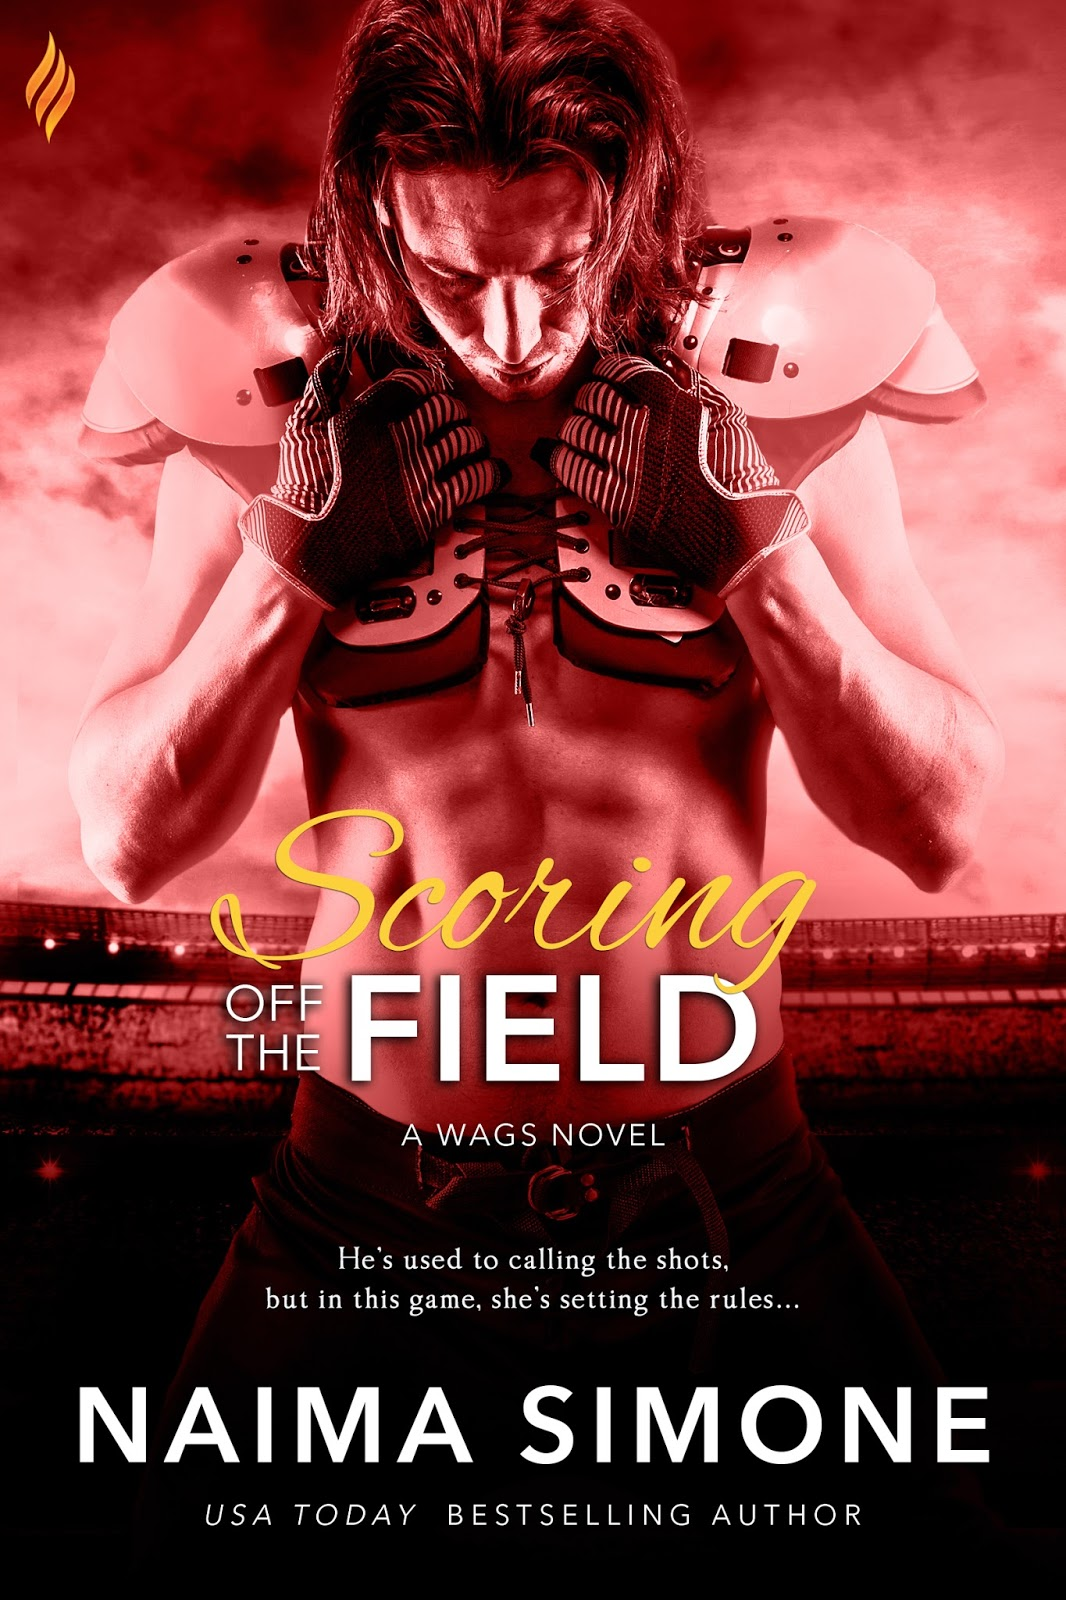 Cris Reads: SCORING OFF THE FIELD (WAGS #2) by Naima Simone